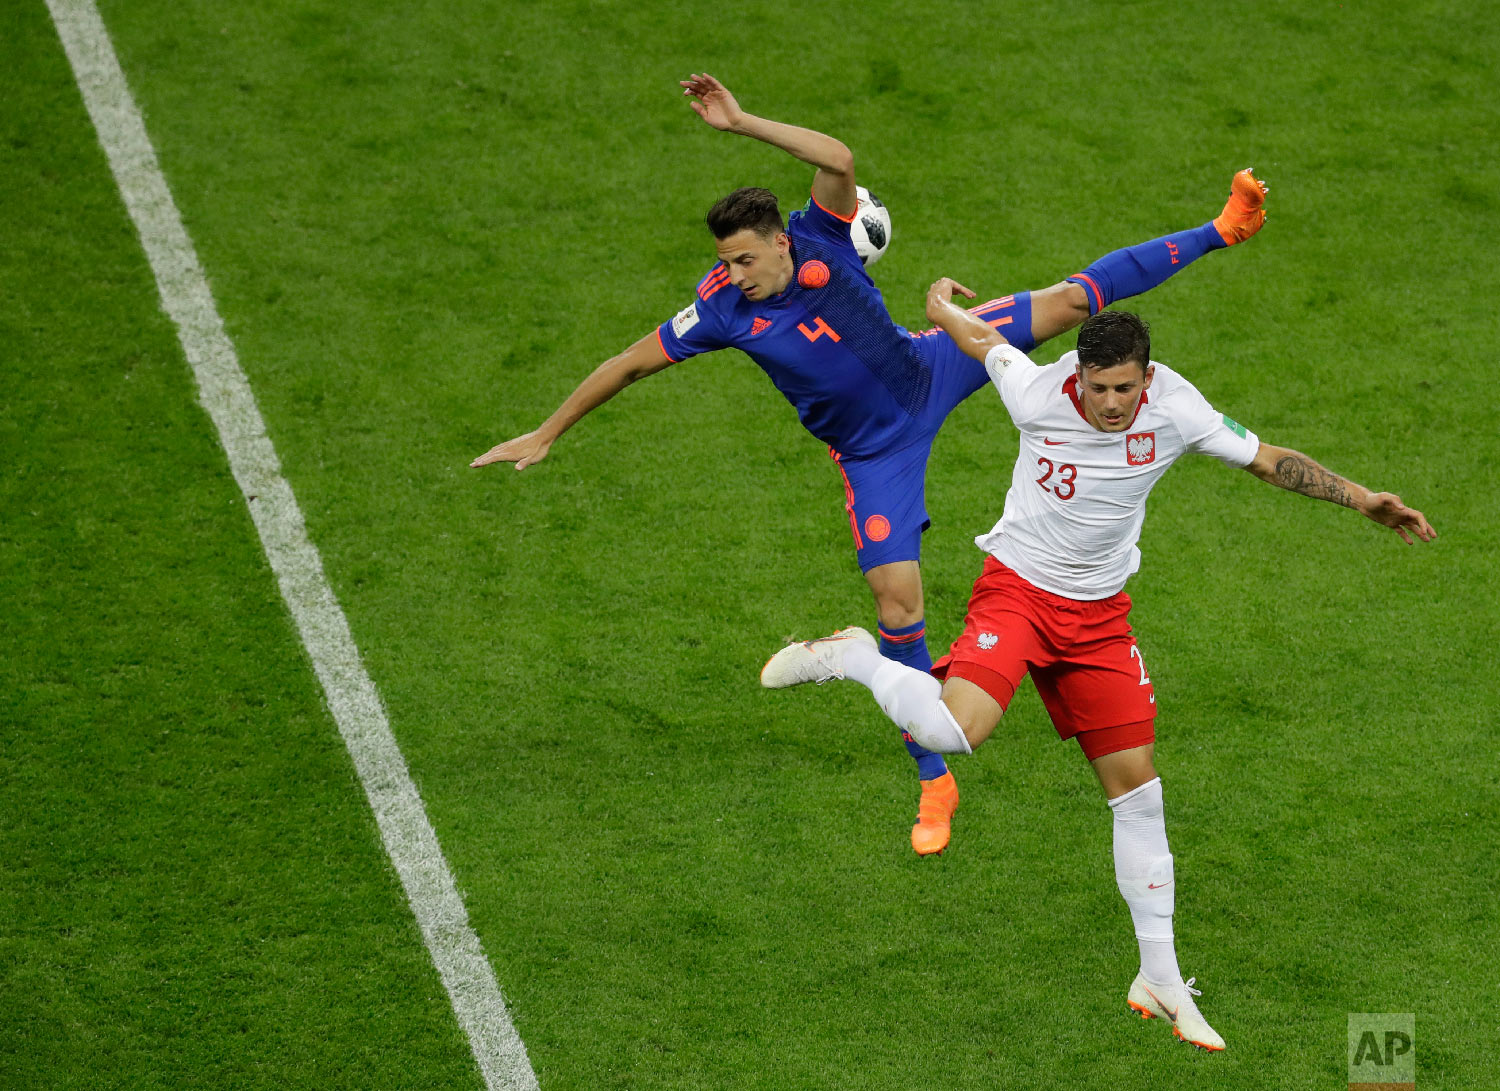 Colombia's Santiago Arias, left, and Poland's Dawid Kownacki battle for the ball during the group H match between Poland and Colombia at the 2018 soccer World Cup at the Kazan Arena in Kazan, Russia, Sunday, June 24, 2018. (AP Photo/Sergei Grits)